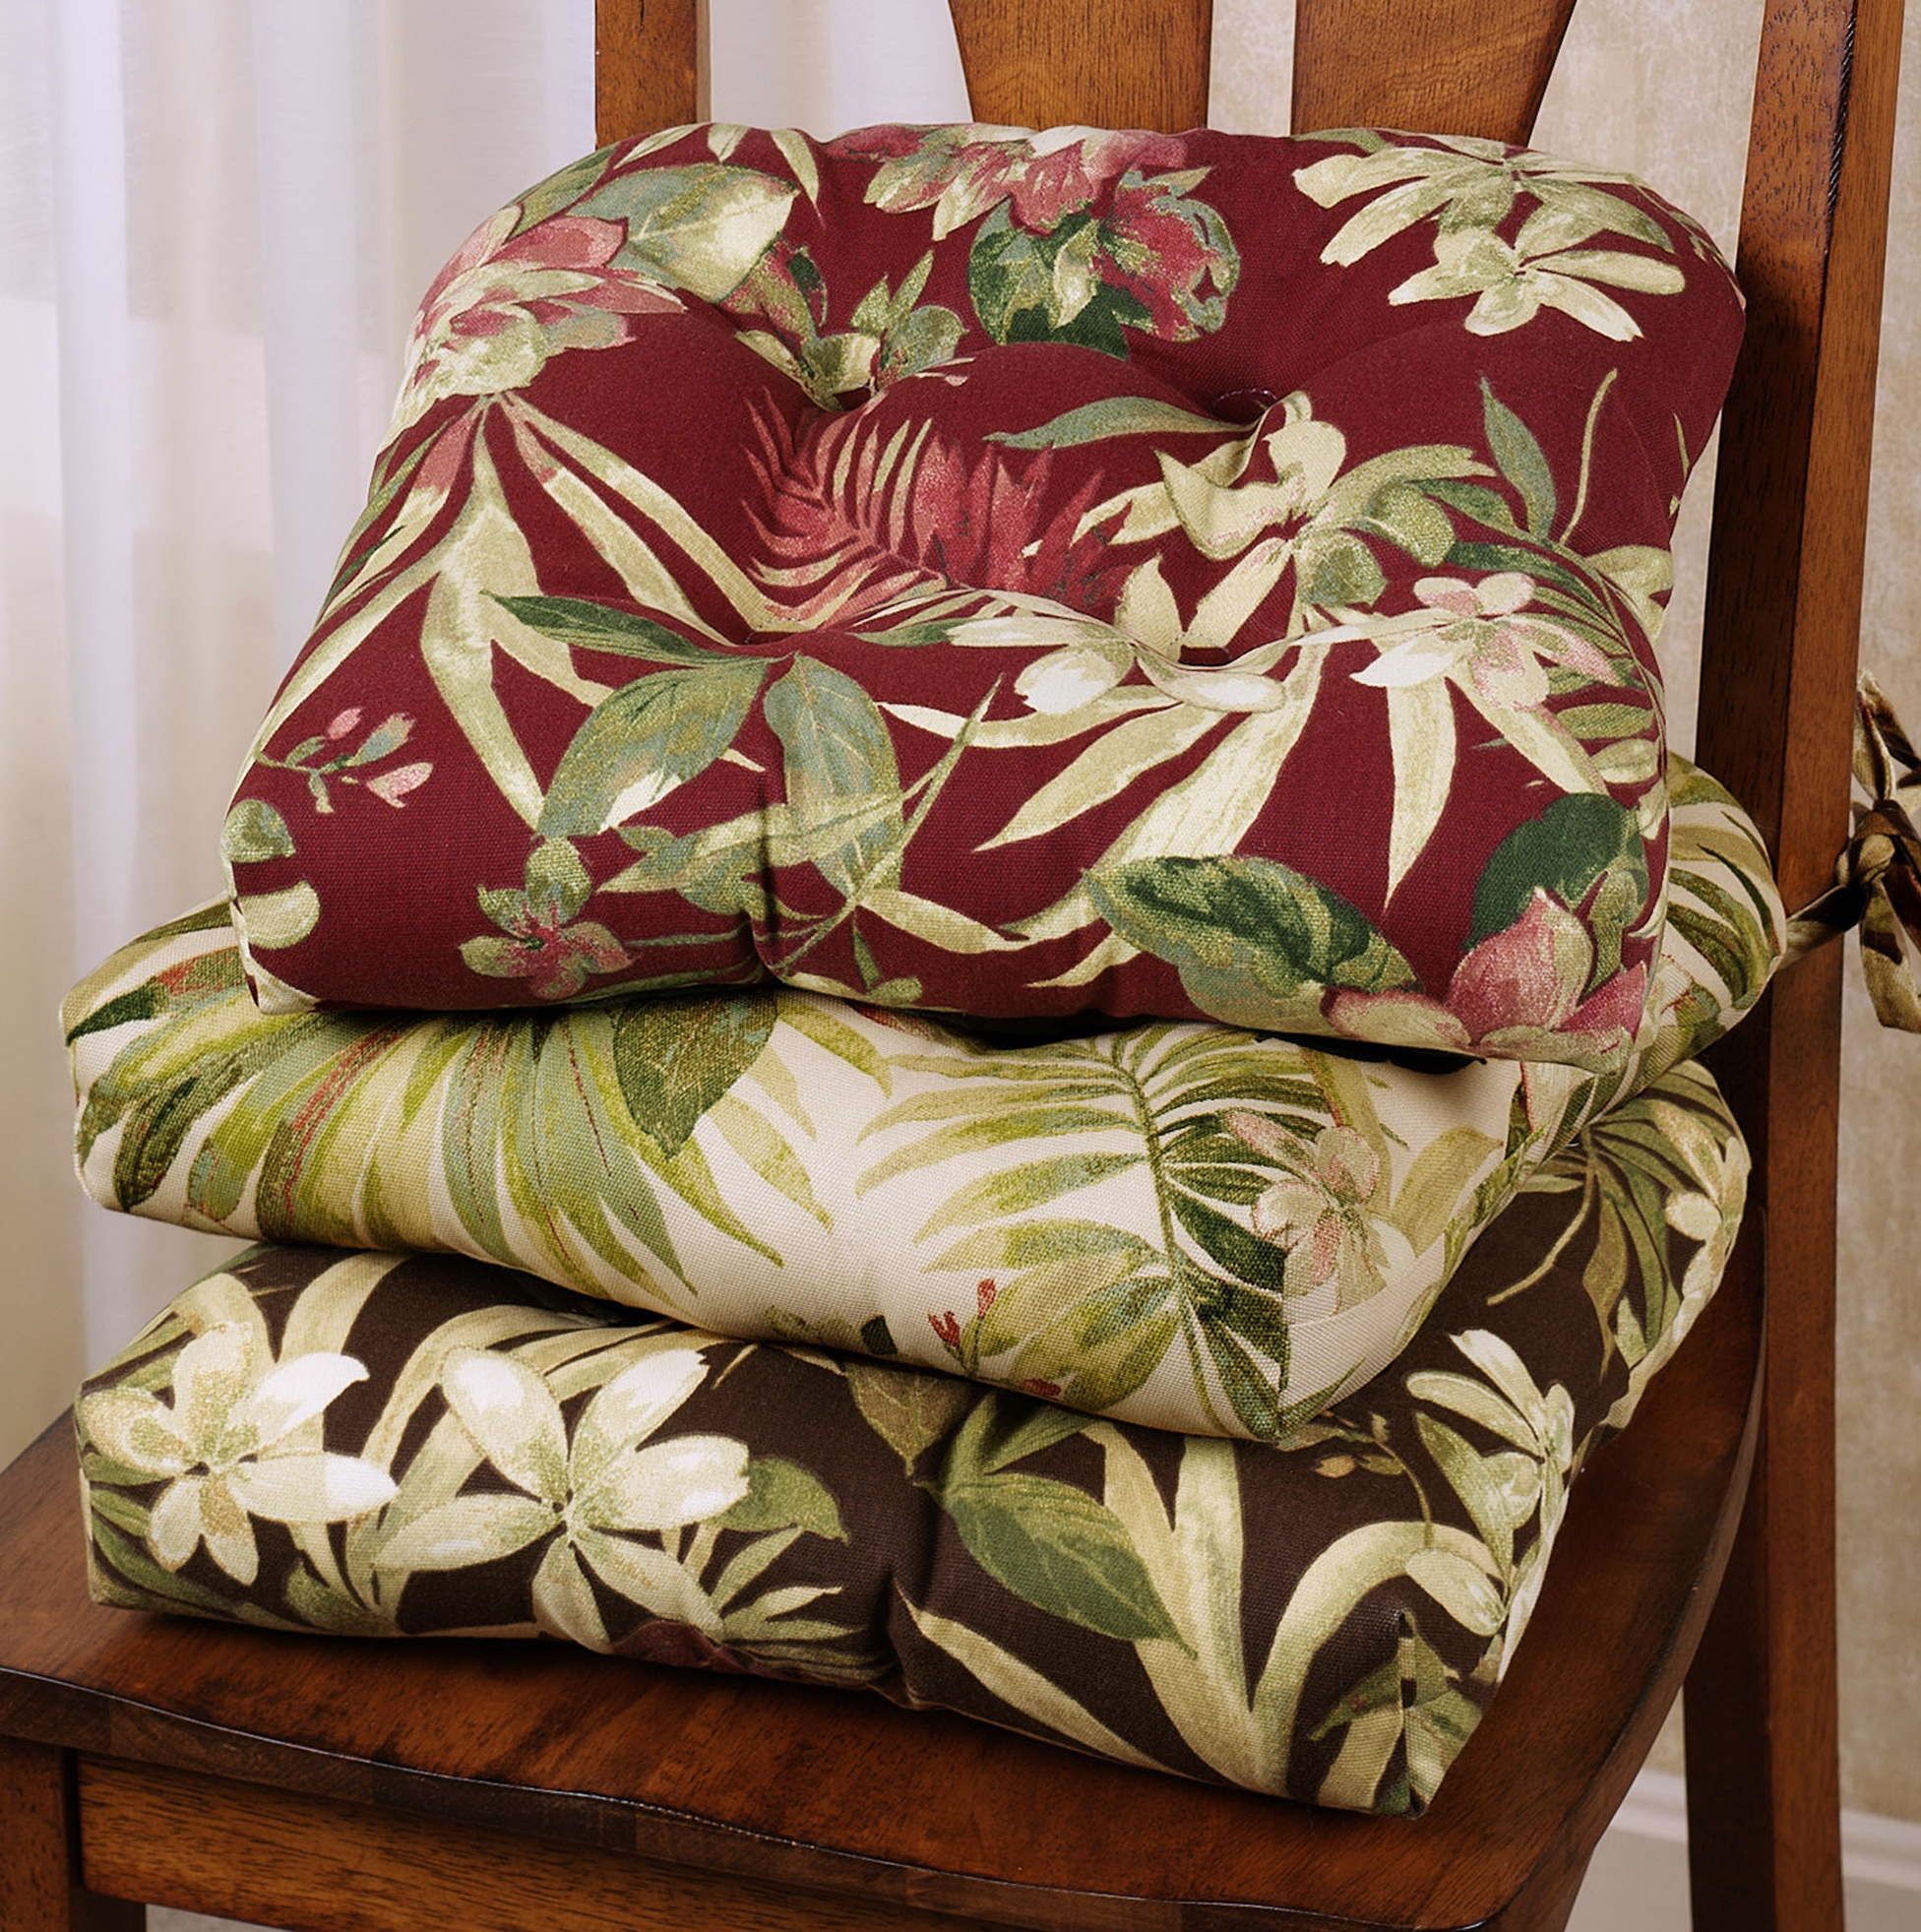 Patio Chair Cushions Clearance Home Design Ideas